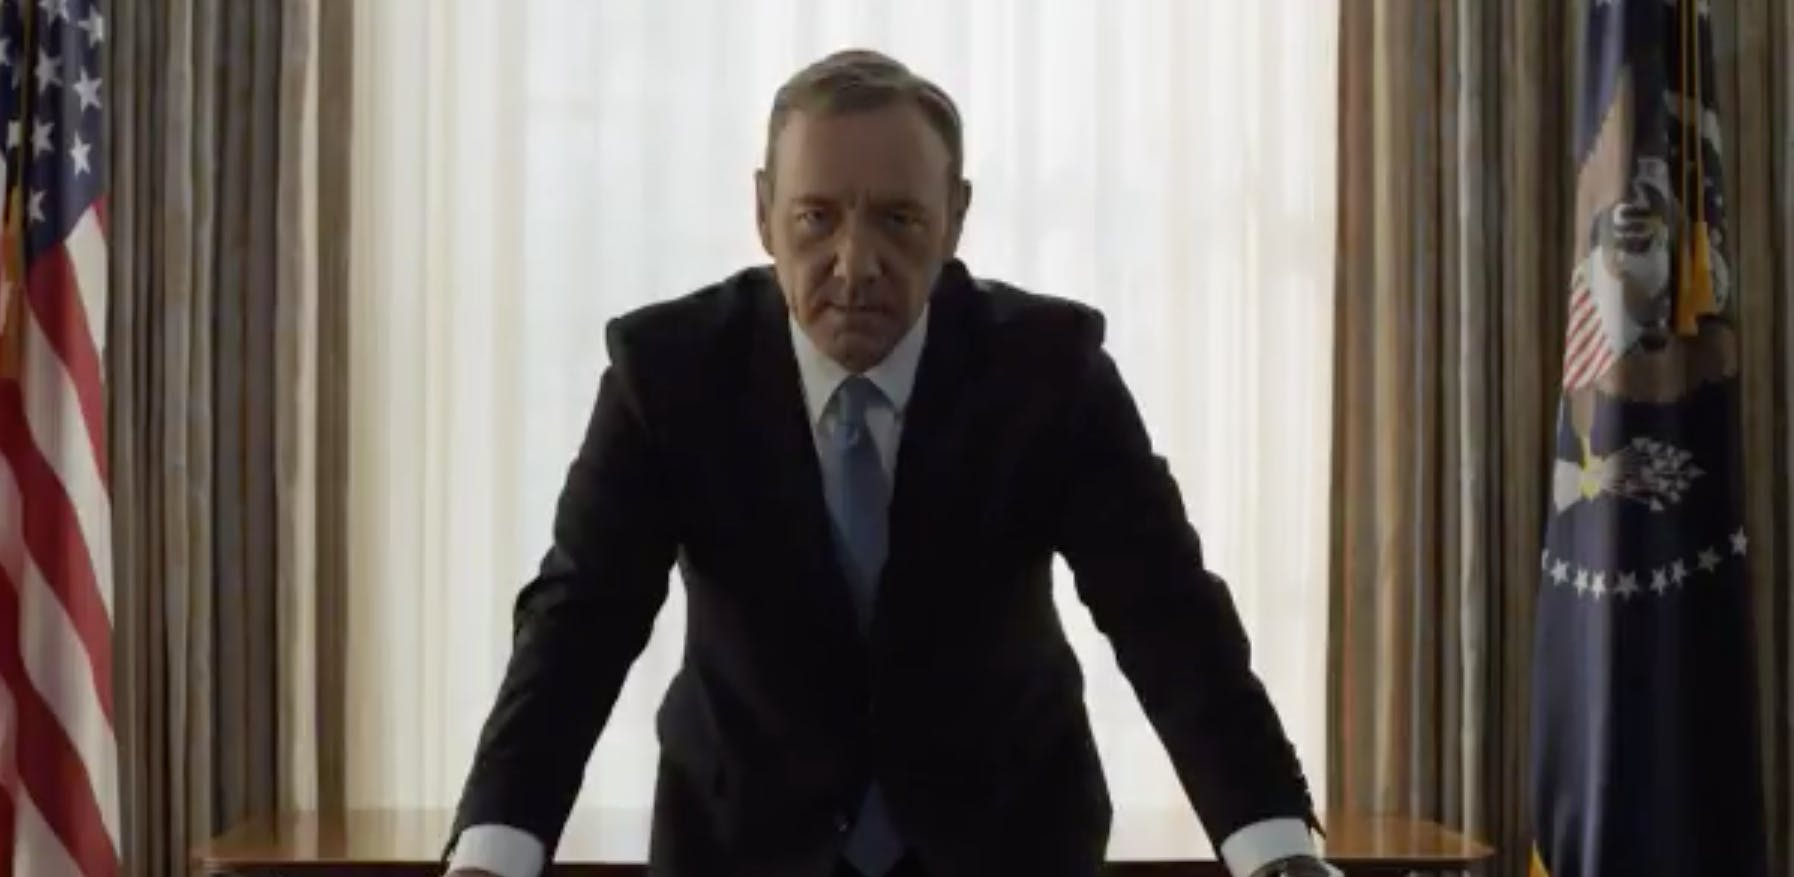 A teaser clip revealing the House of Cards season 5 release date